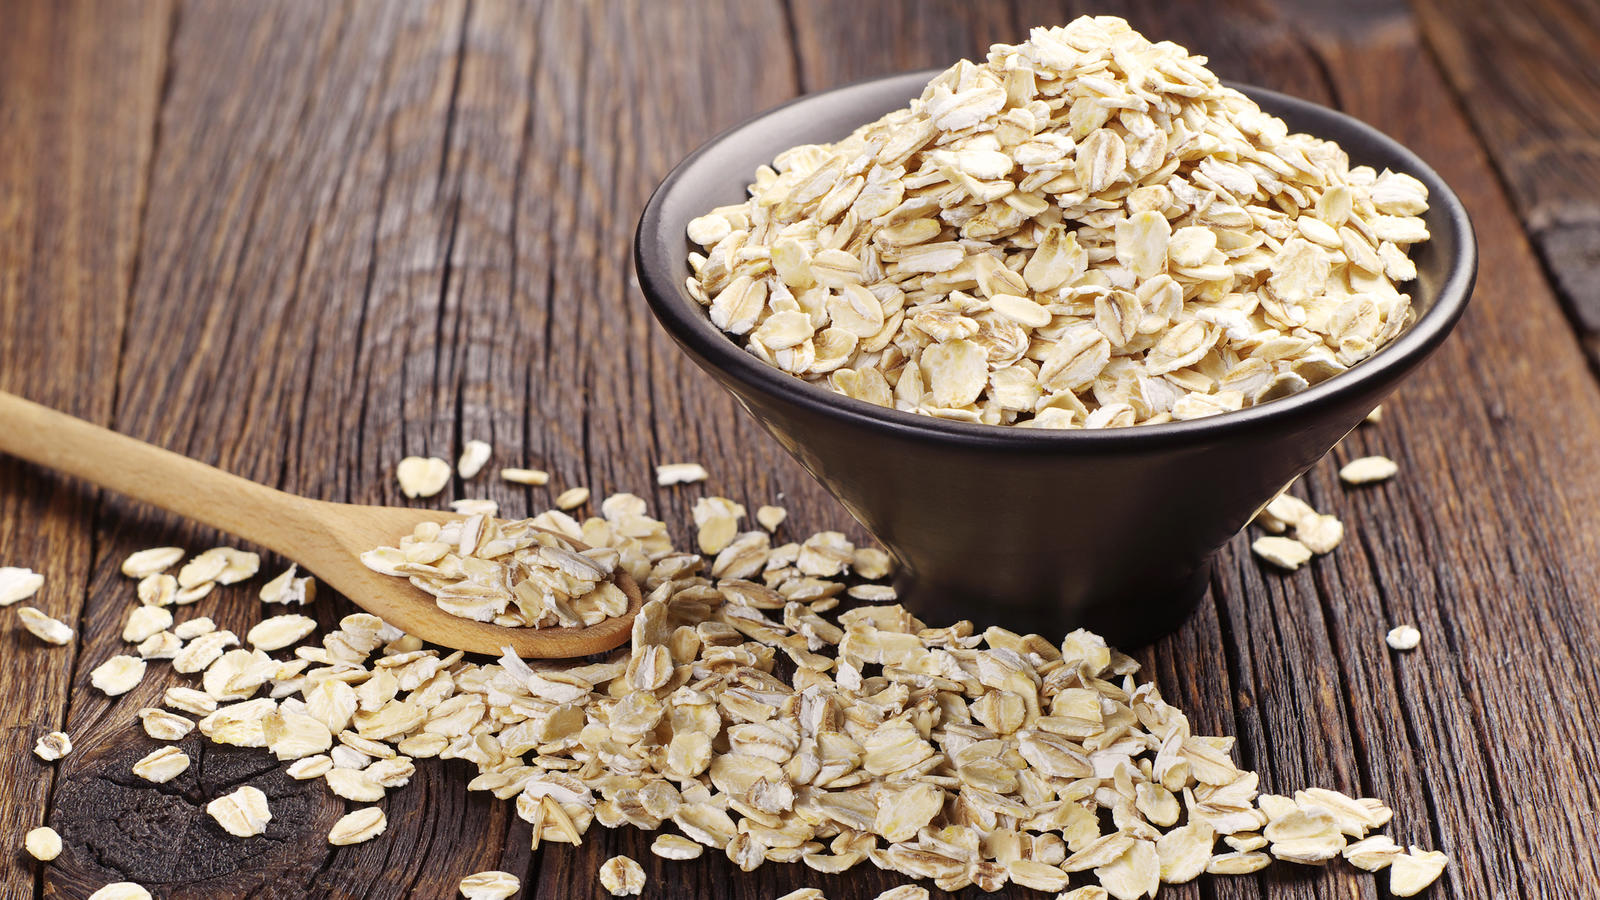 Oatmeal or oat flakes in black bowl and near on dark wooden table